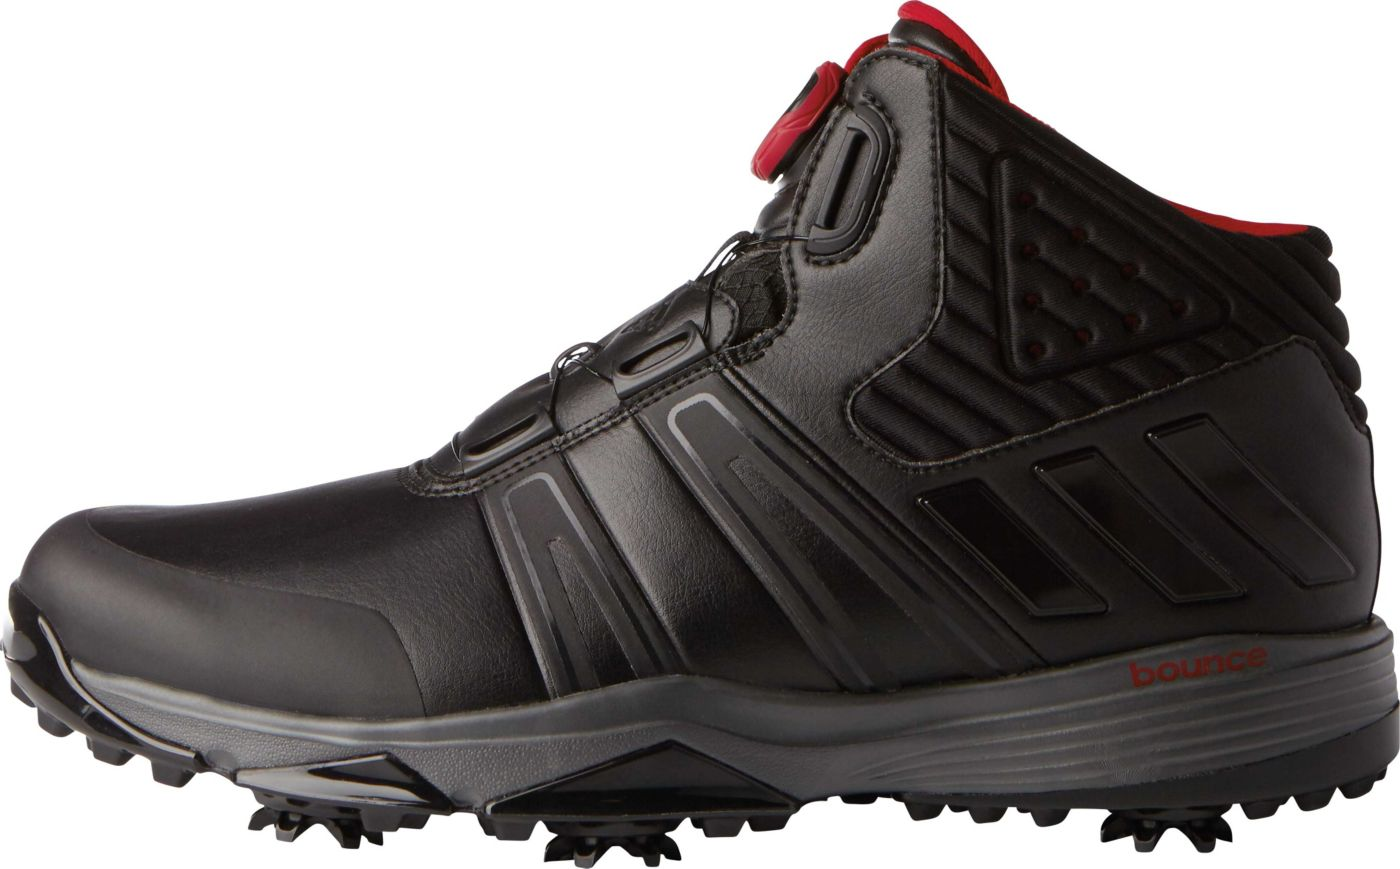 adidas climaproof BOA Shoes